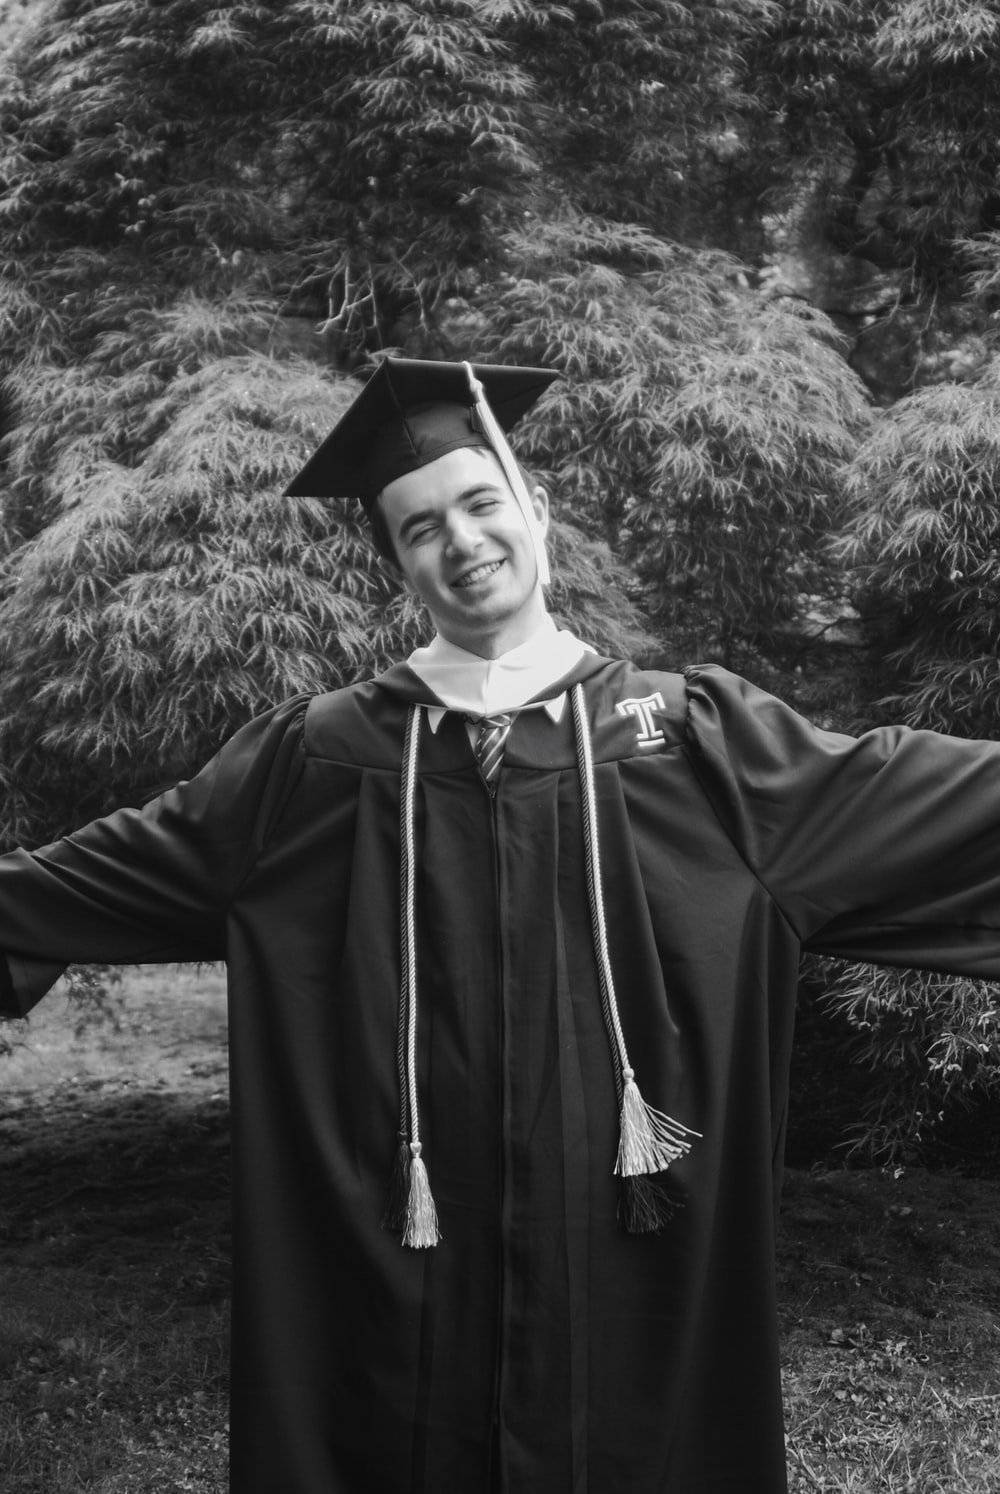 grayscale photography of man wearing academic dress